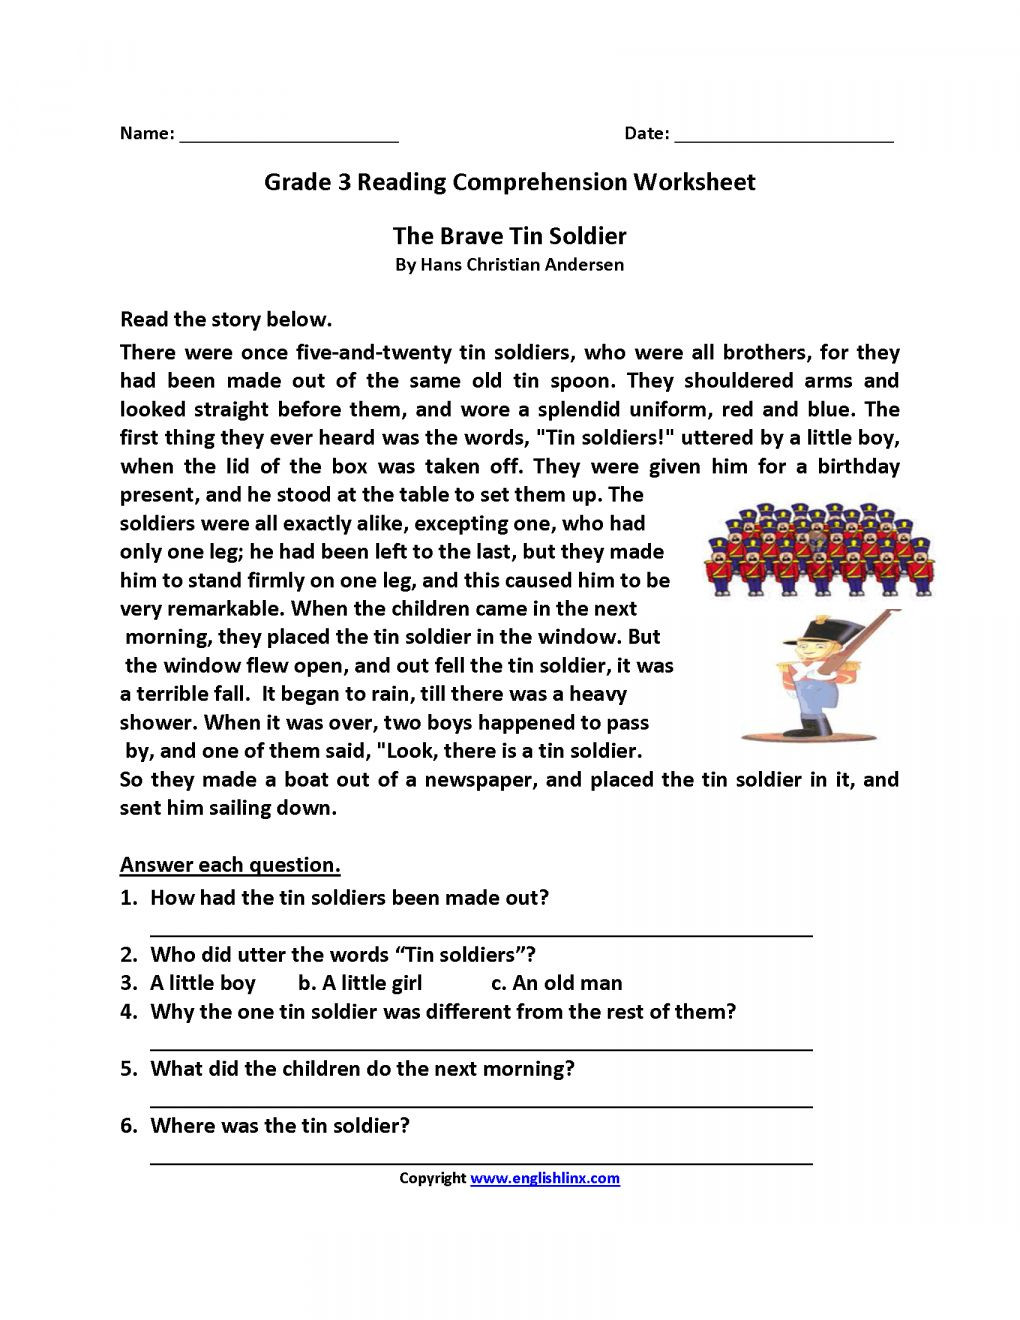 Text Evidence Worksheets 3rd Grade 7 3rd Grade Reading Prehension Worksheets with Questions